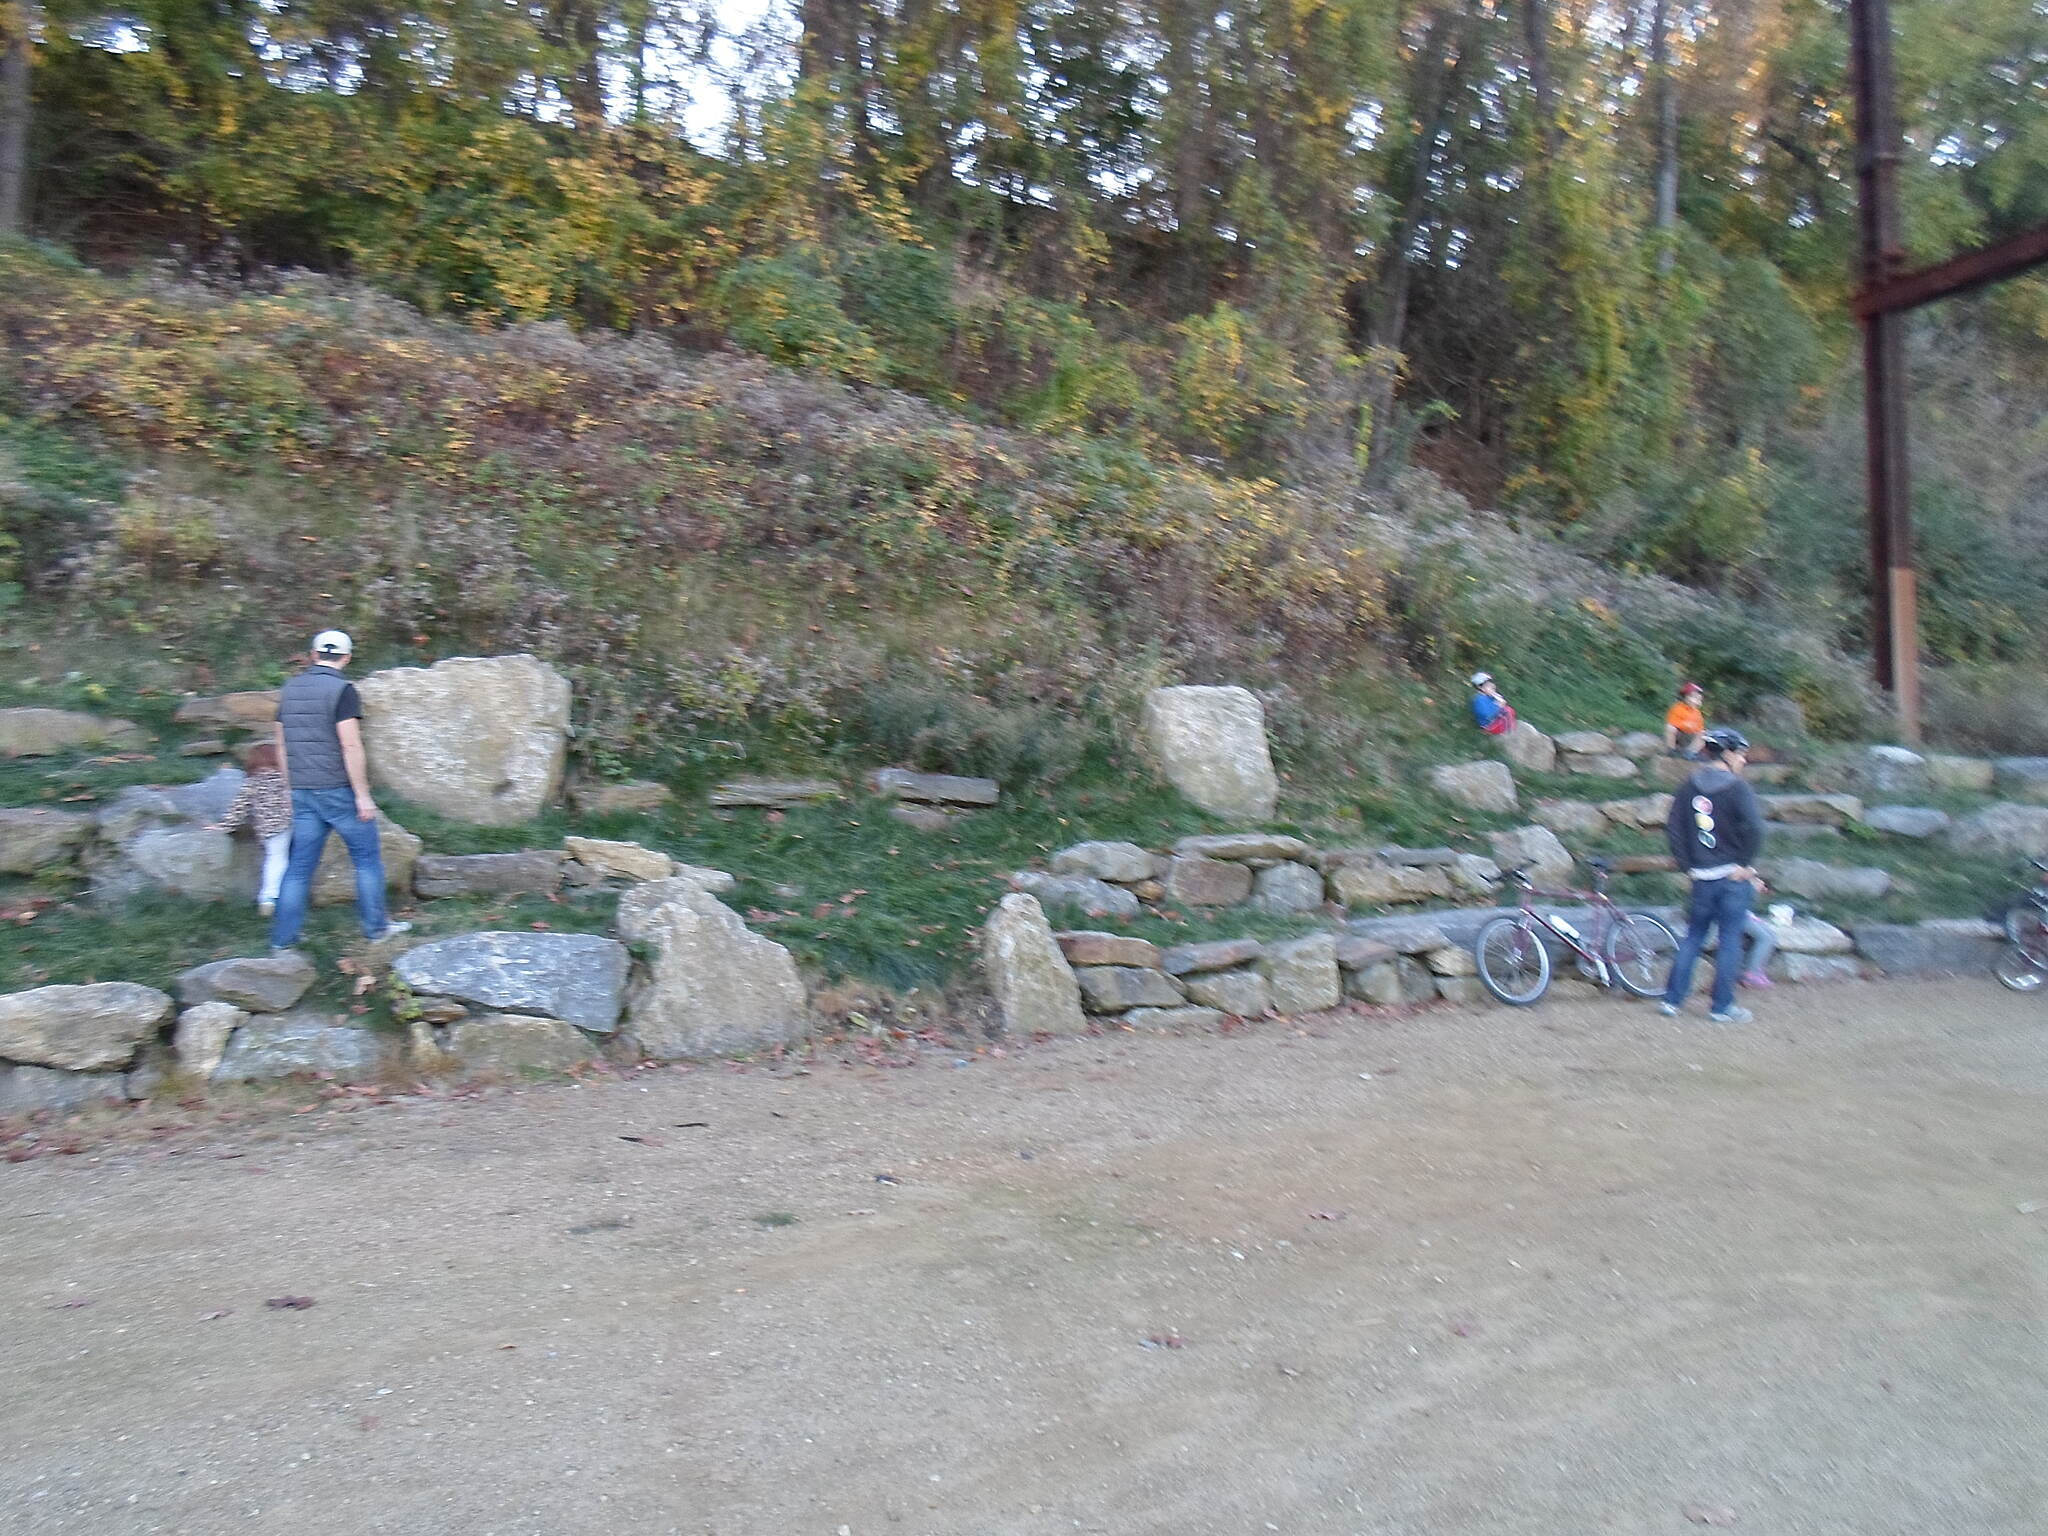 Cynwyd Heritage Trail Cynwyd Heritage Trail Both children and adults enjoy playing on the rocks just south of the Manayunk Trestle. Taken Nov. 2015.